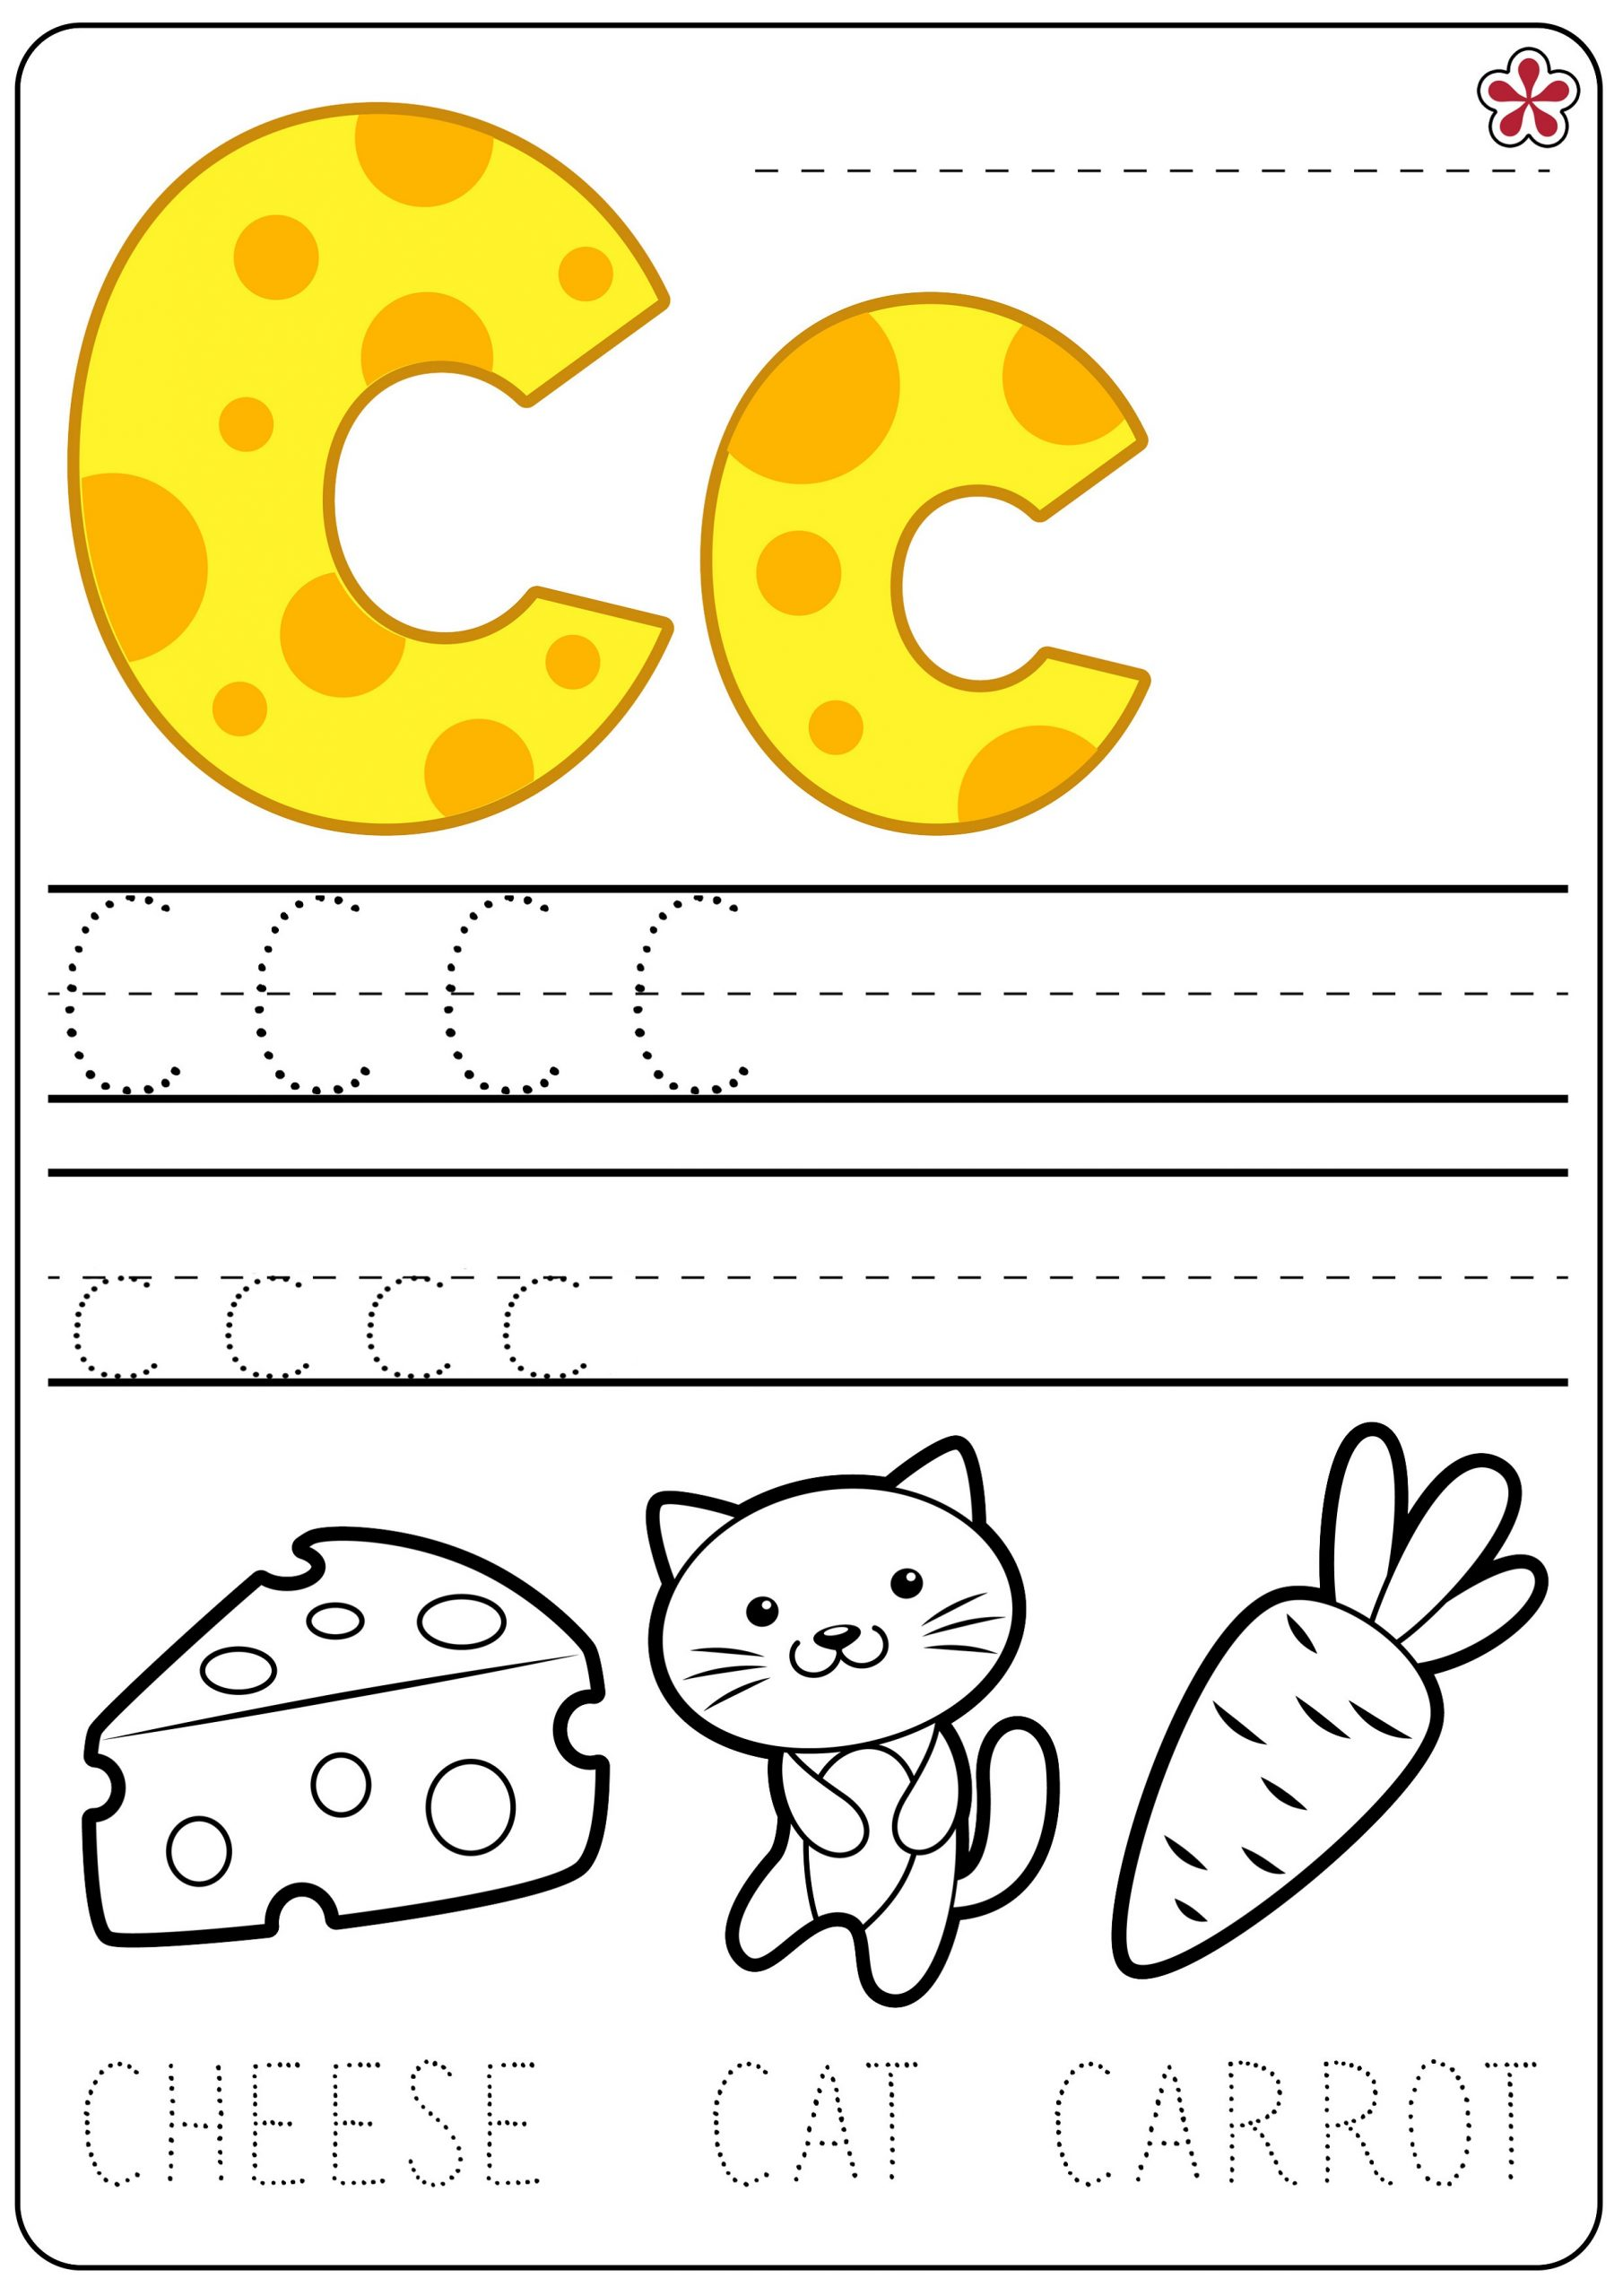 Printable Trace Letter C